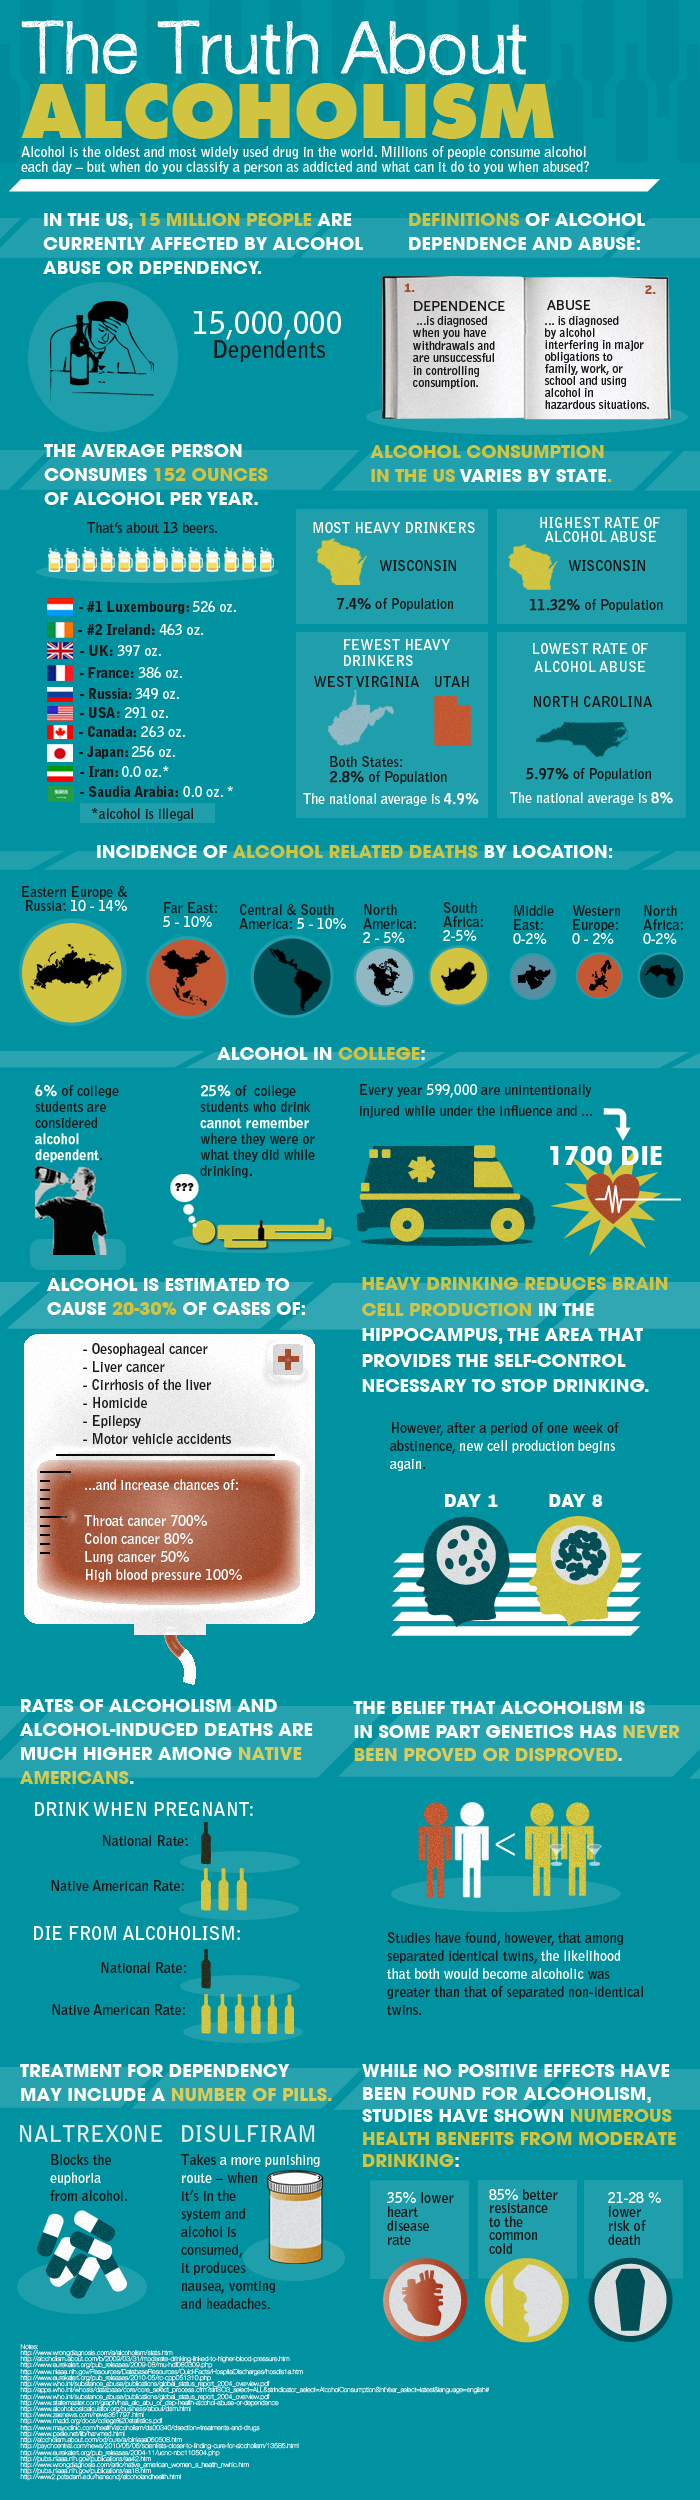 The-truth-about-alcoholism